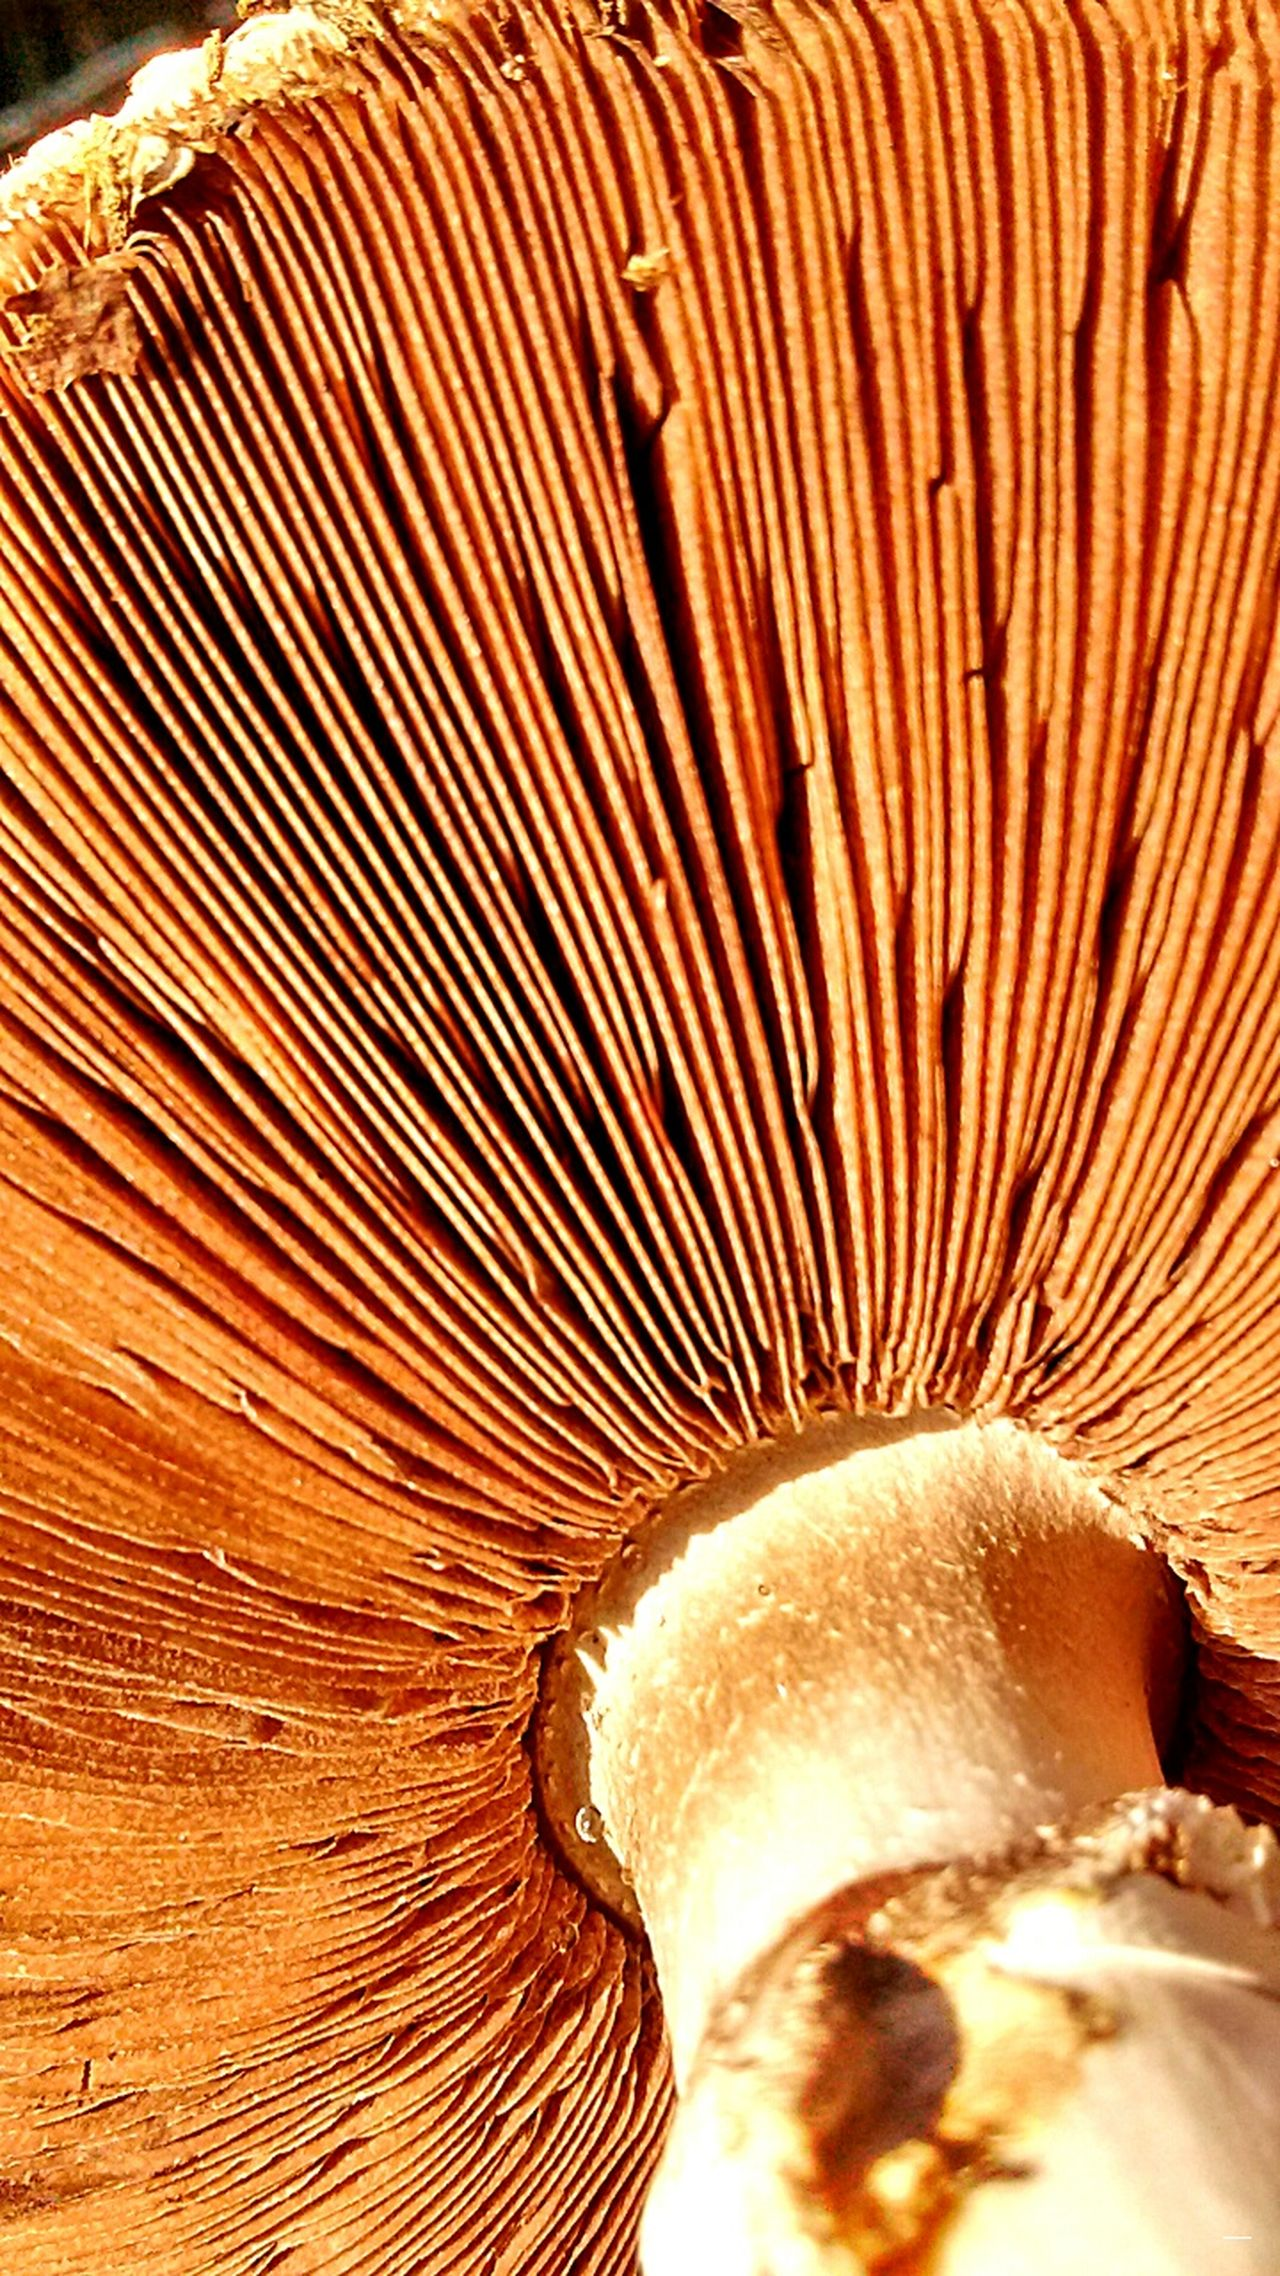 Your Design Story Fungus Fungi Seta Gourmet Foodporn Nature Detail Brown Relaxing Simplicity Natureporn Naturaleza Design Art Mico Hongo Descomposer Life Nature_collection Mushroom Dew Drops Champiñon Champignon Casual